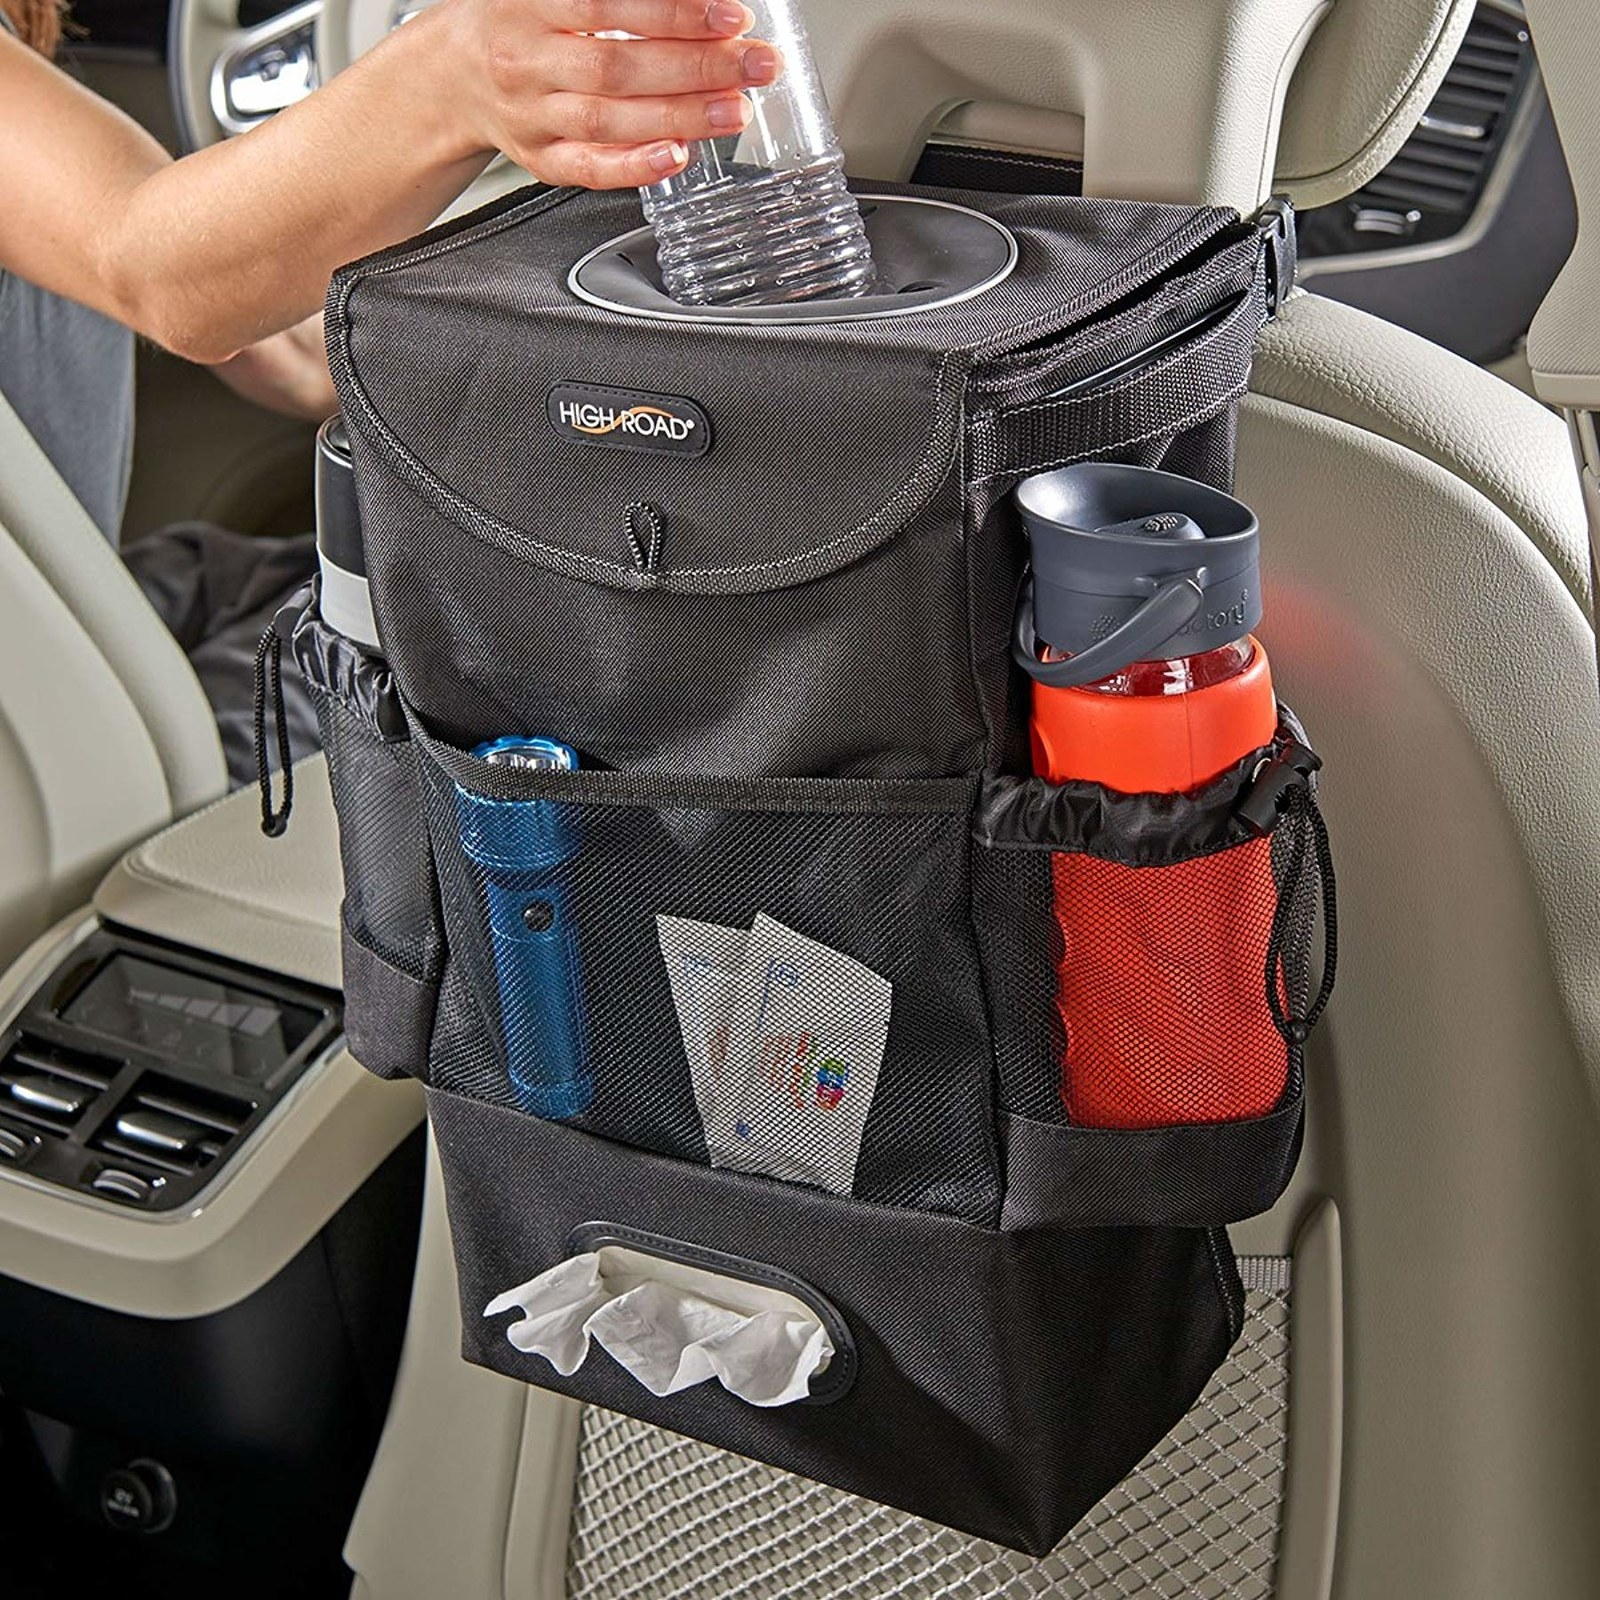 the car storage bag mounted to the back of the passenger seat with a hand putting a bottle into the top compartment, side pockets with water bottles inside, and we wipes peeking out of a dispenser along the bottom